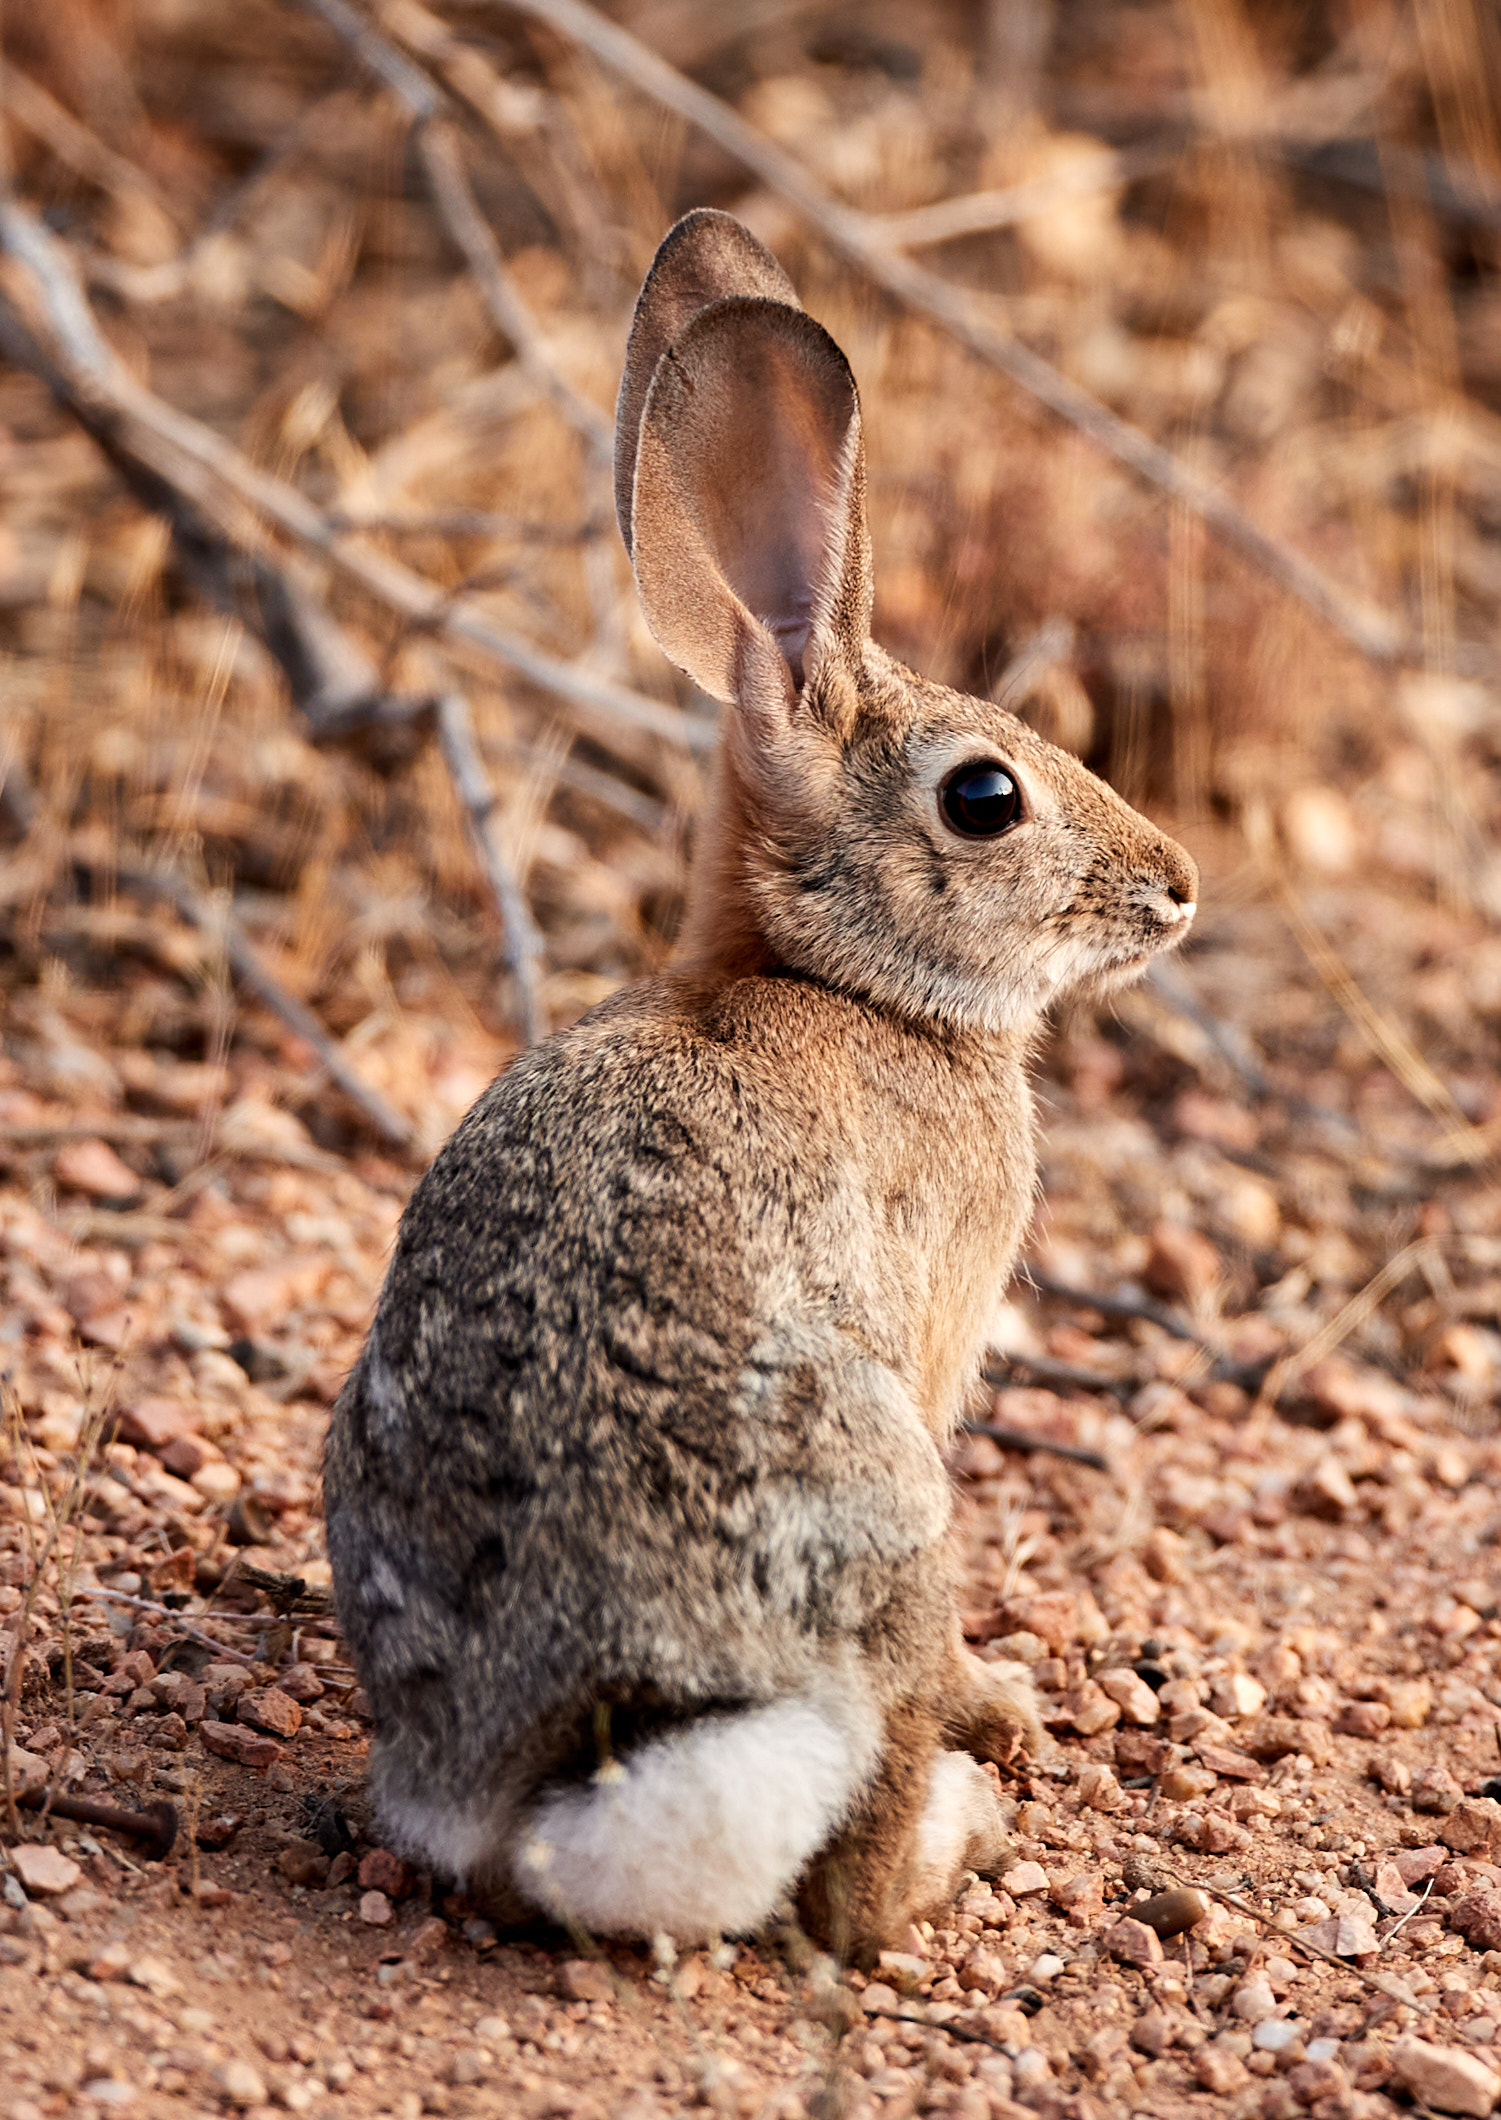 57520 download wallpaper Animals, Rabbit, Hare, Animal, Ears, Nice, Sweetheart screensavers and pictures for free